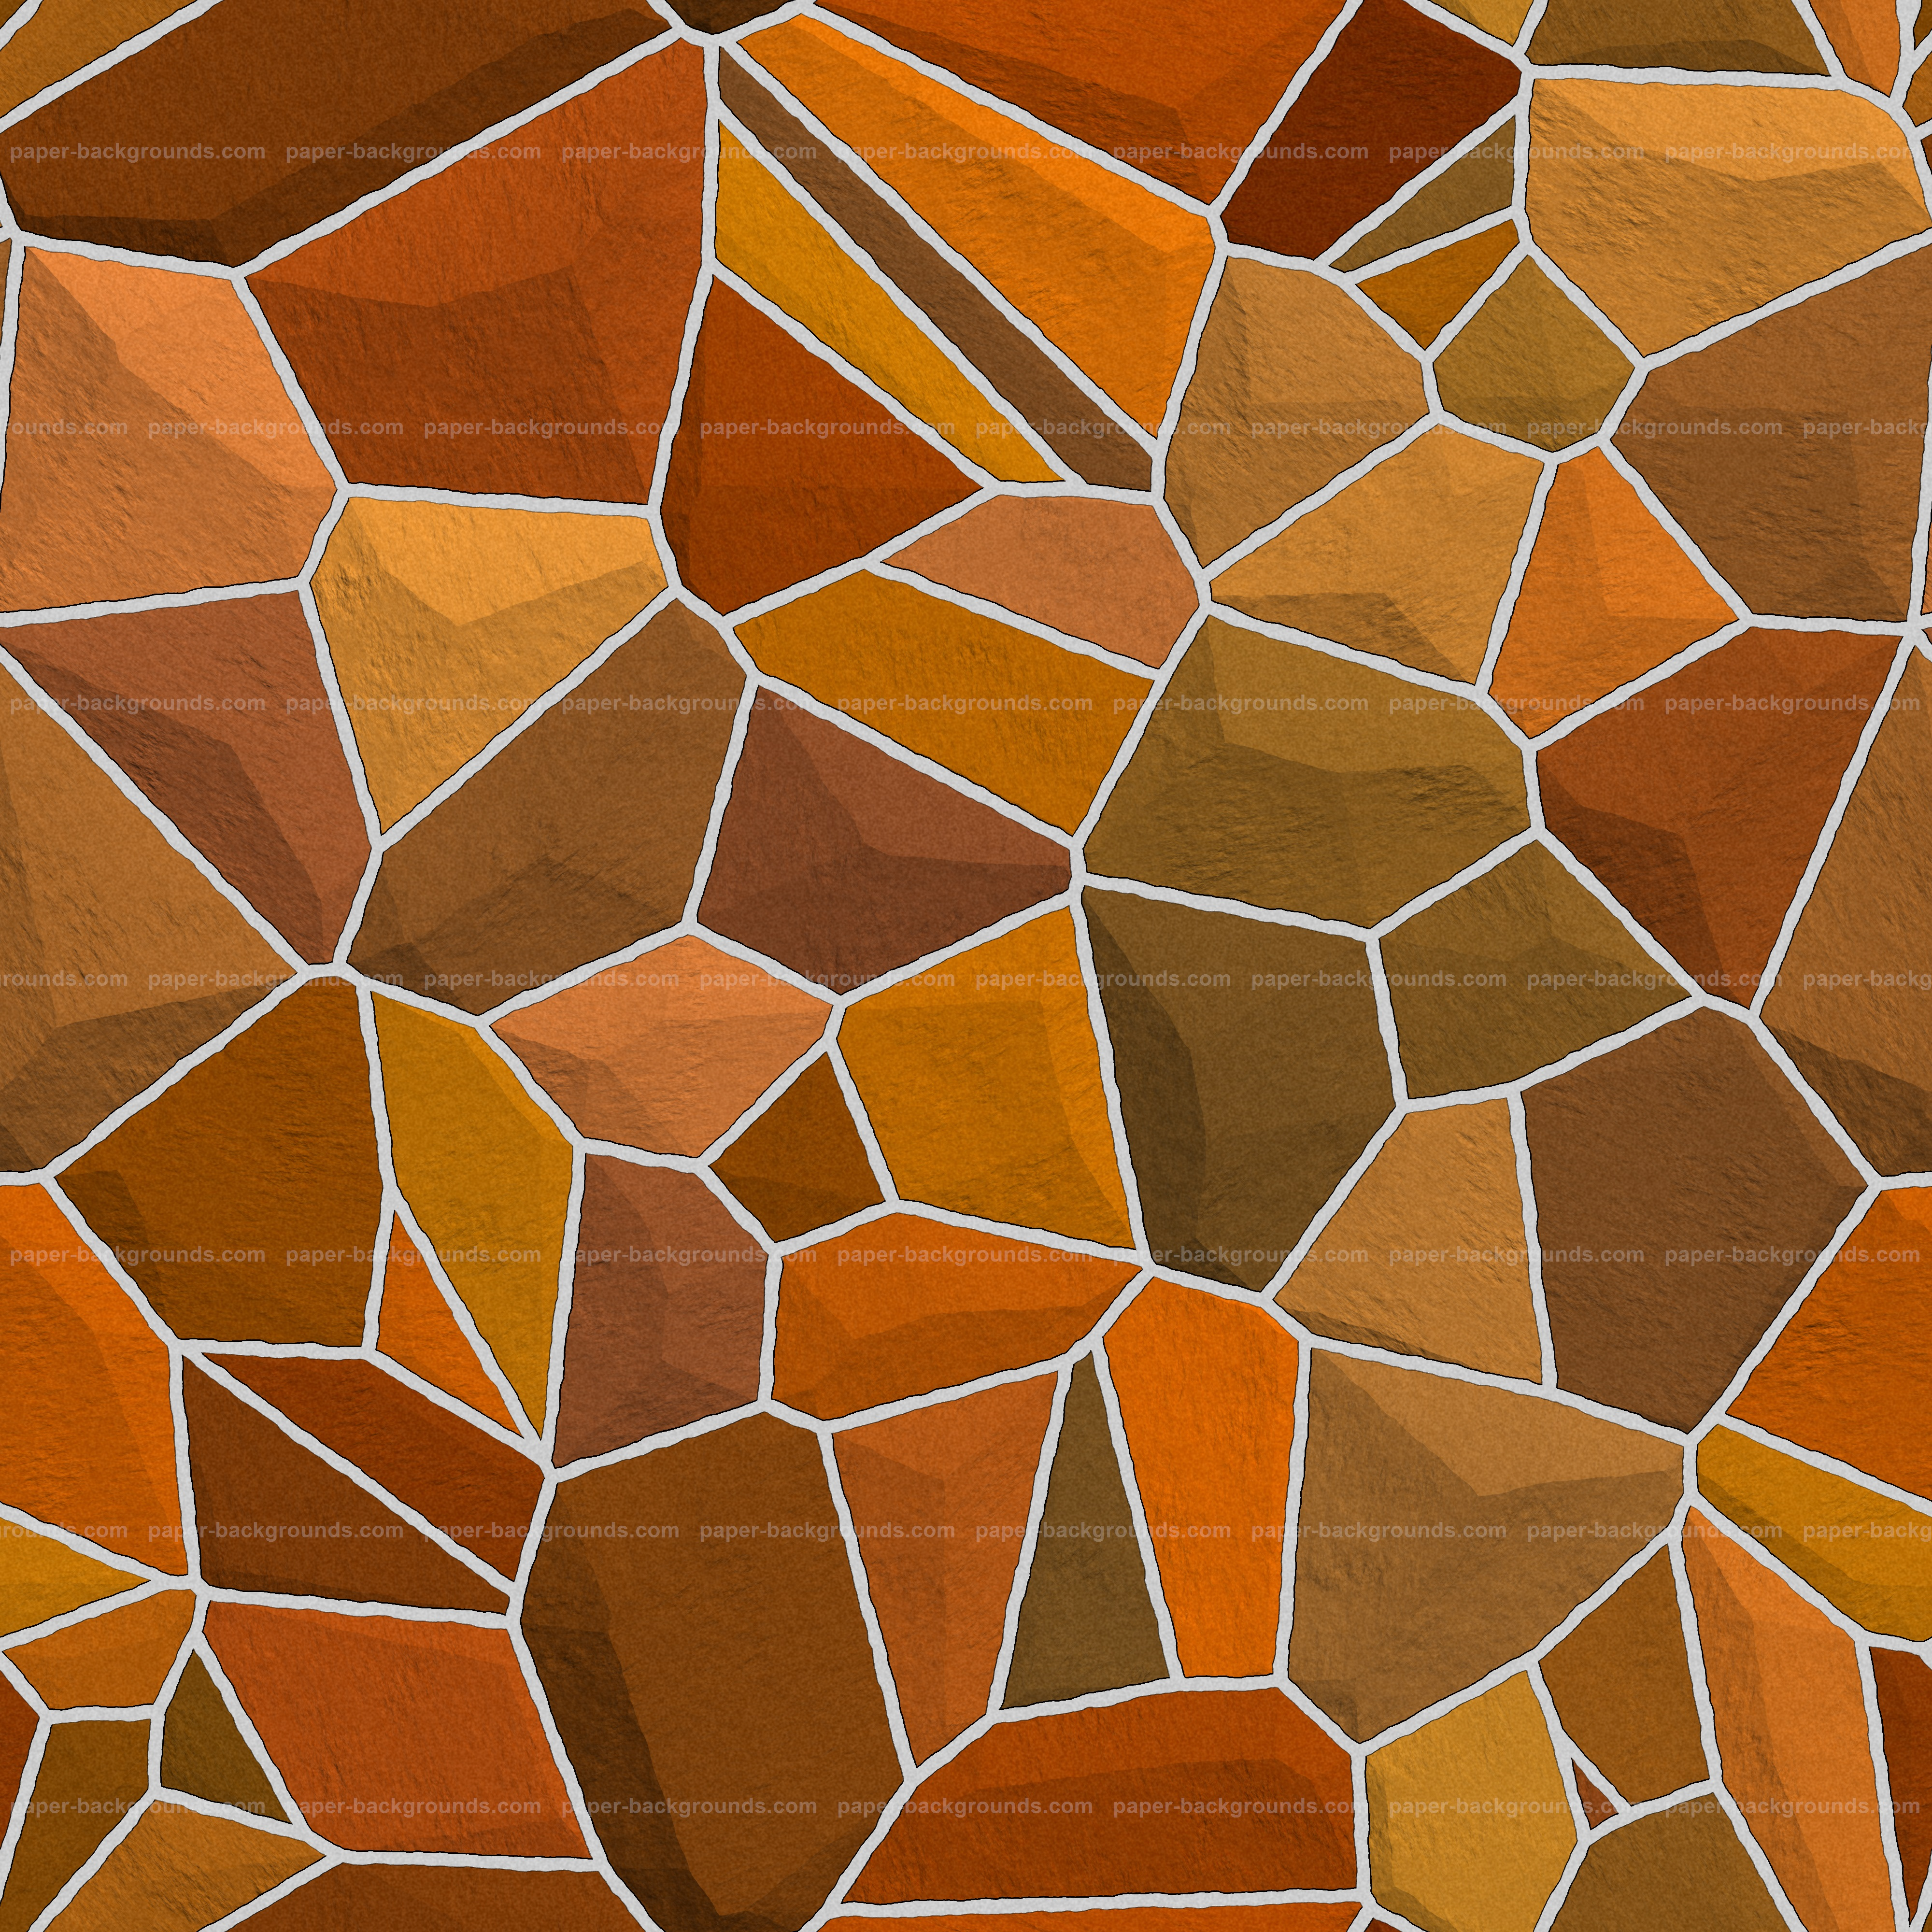 Paper backgrounds stones textures royalty free hd paper - Paper Backgrounds Seamless Colored Brown Stone Wall